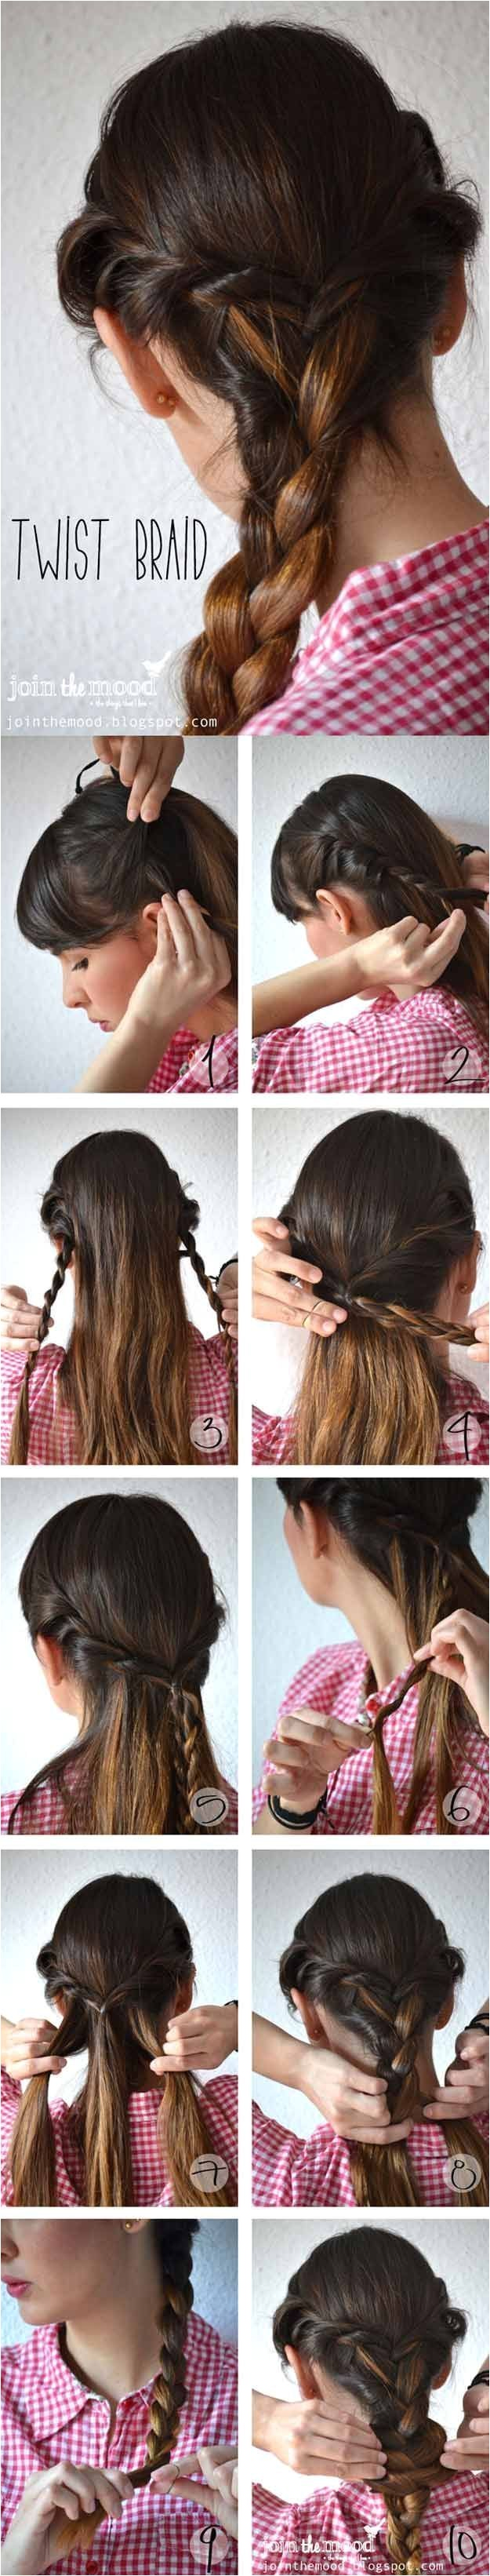 Best Hairstyles For Teens Cute Hairstyles for School Easy And Cute Haircuts And Hairstyles For Teens And Girls Cute Ideas Like Braids And Tutorials And